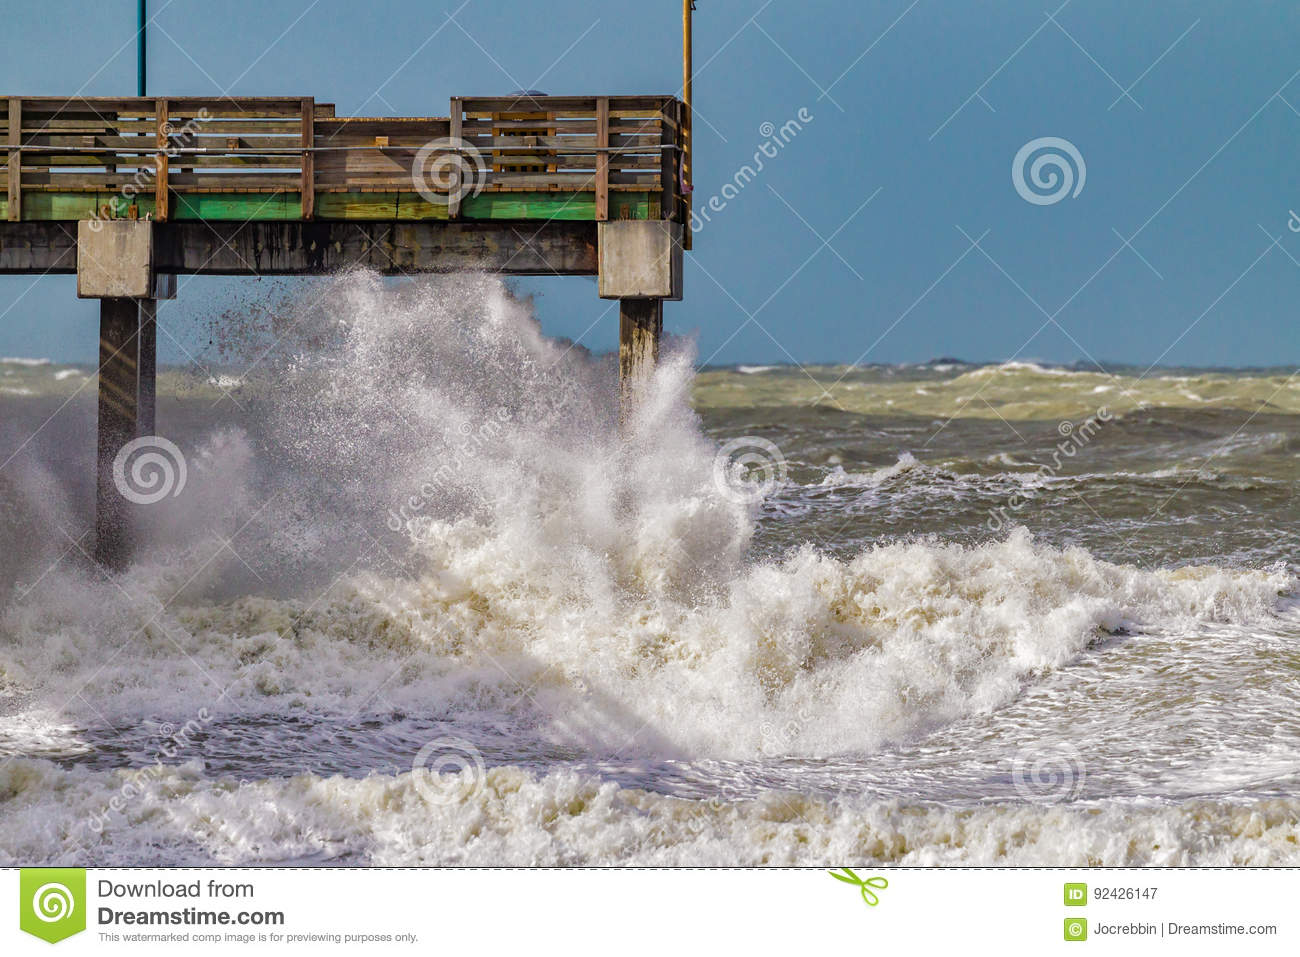 High Surf Pounds Venice Coastline Due To El Nino During January 2016